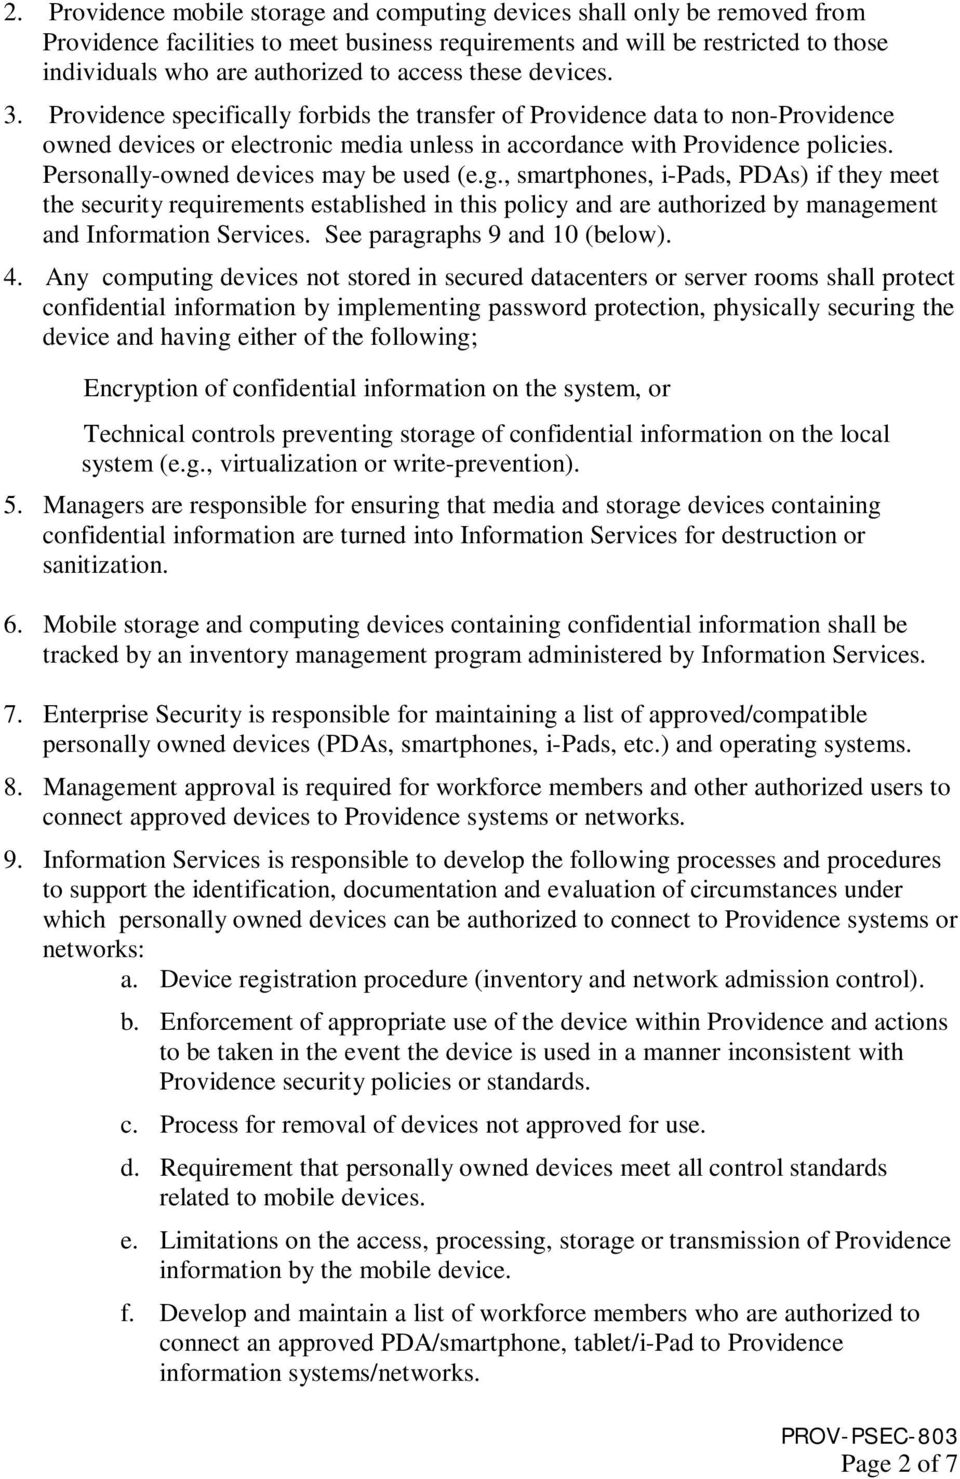 Personally-owned devices may be used (e.g., smartphones, i-pads, PDAs) if they meet the security requirements established in this policy and are authorized by management and Information Services.